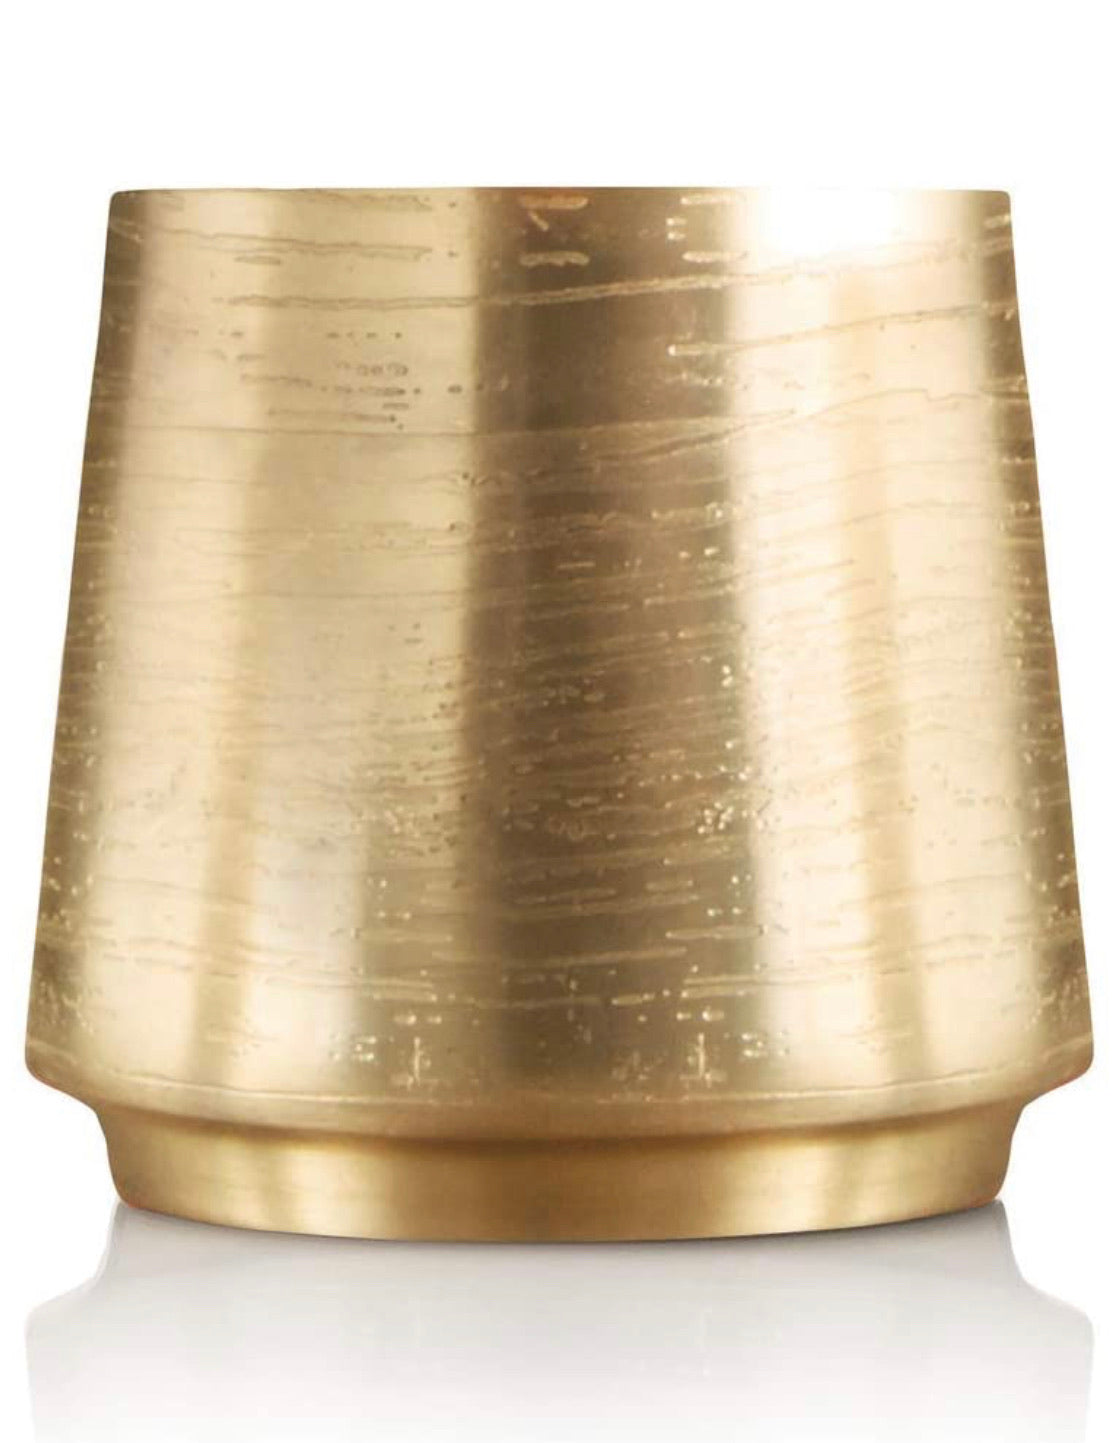 Frasier Fir Metal Joyeux Candle